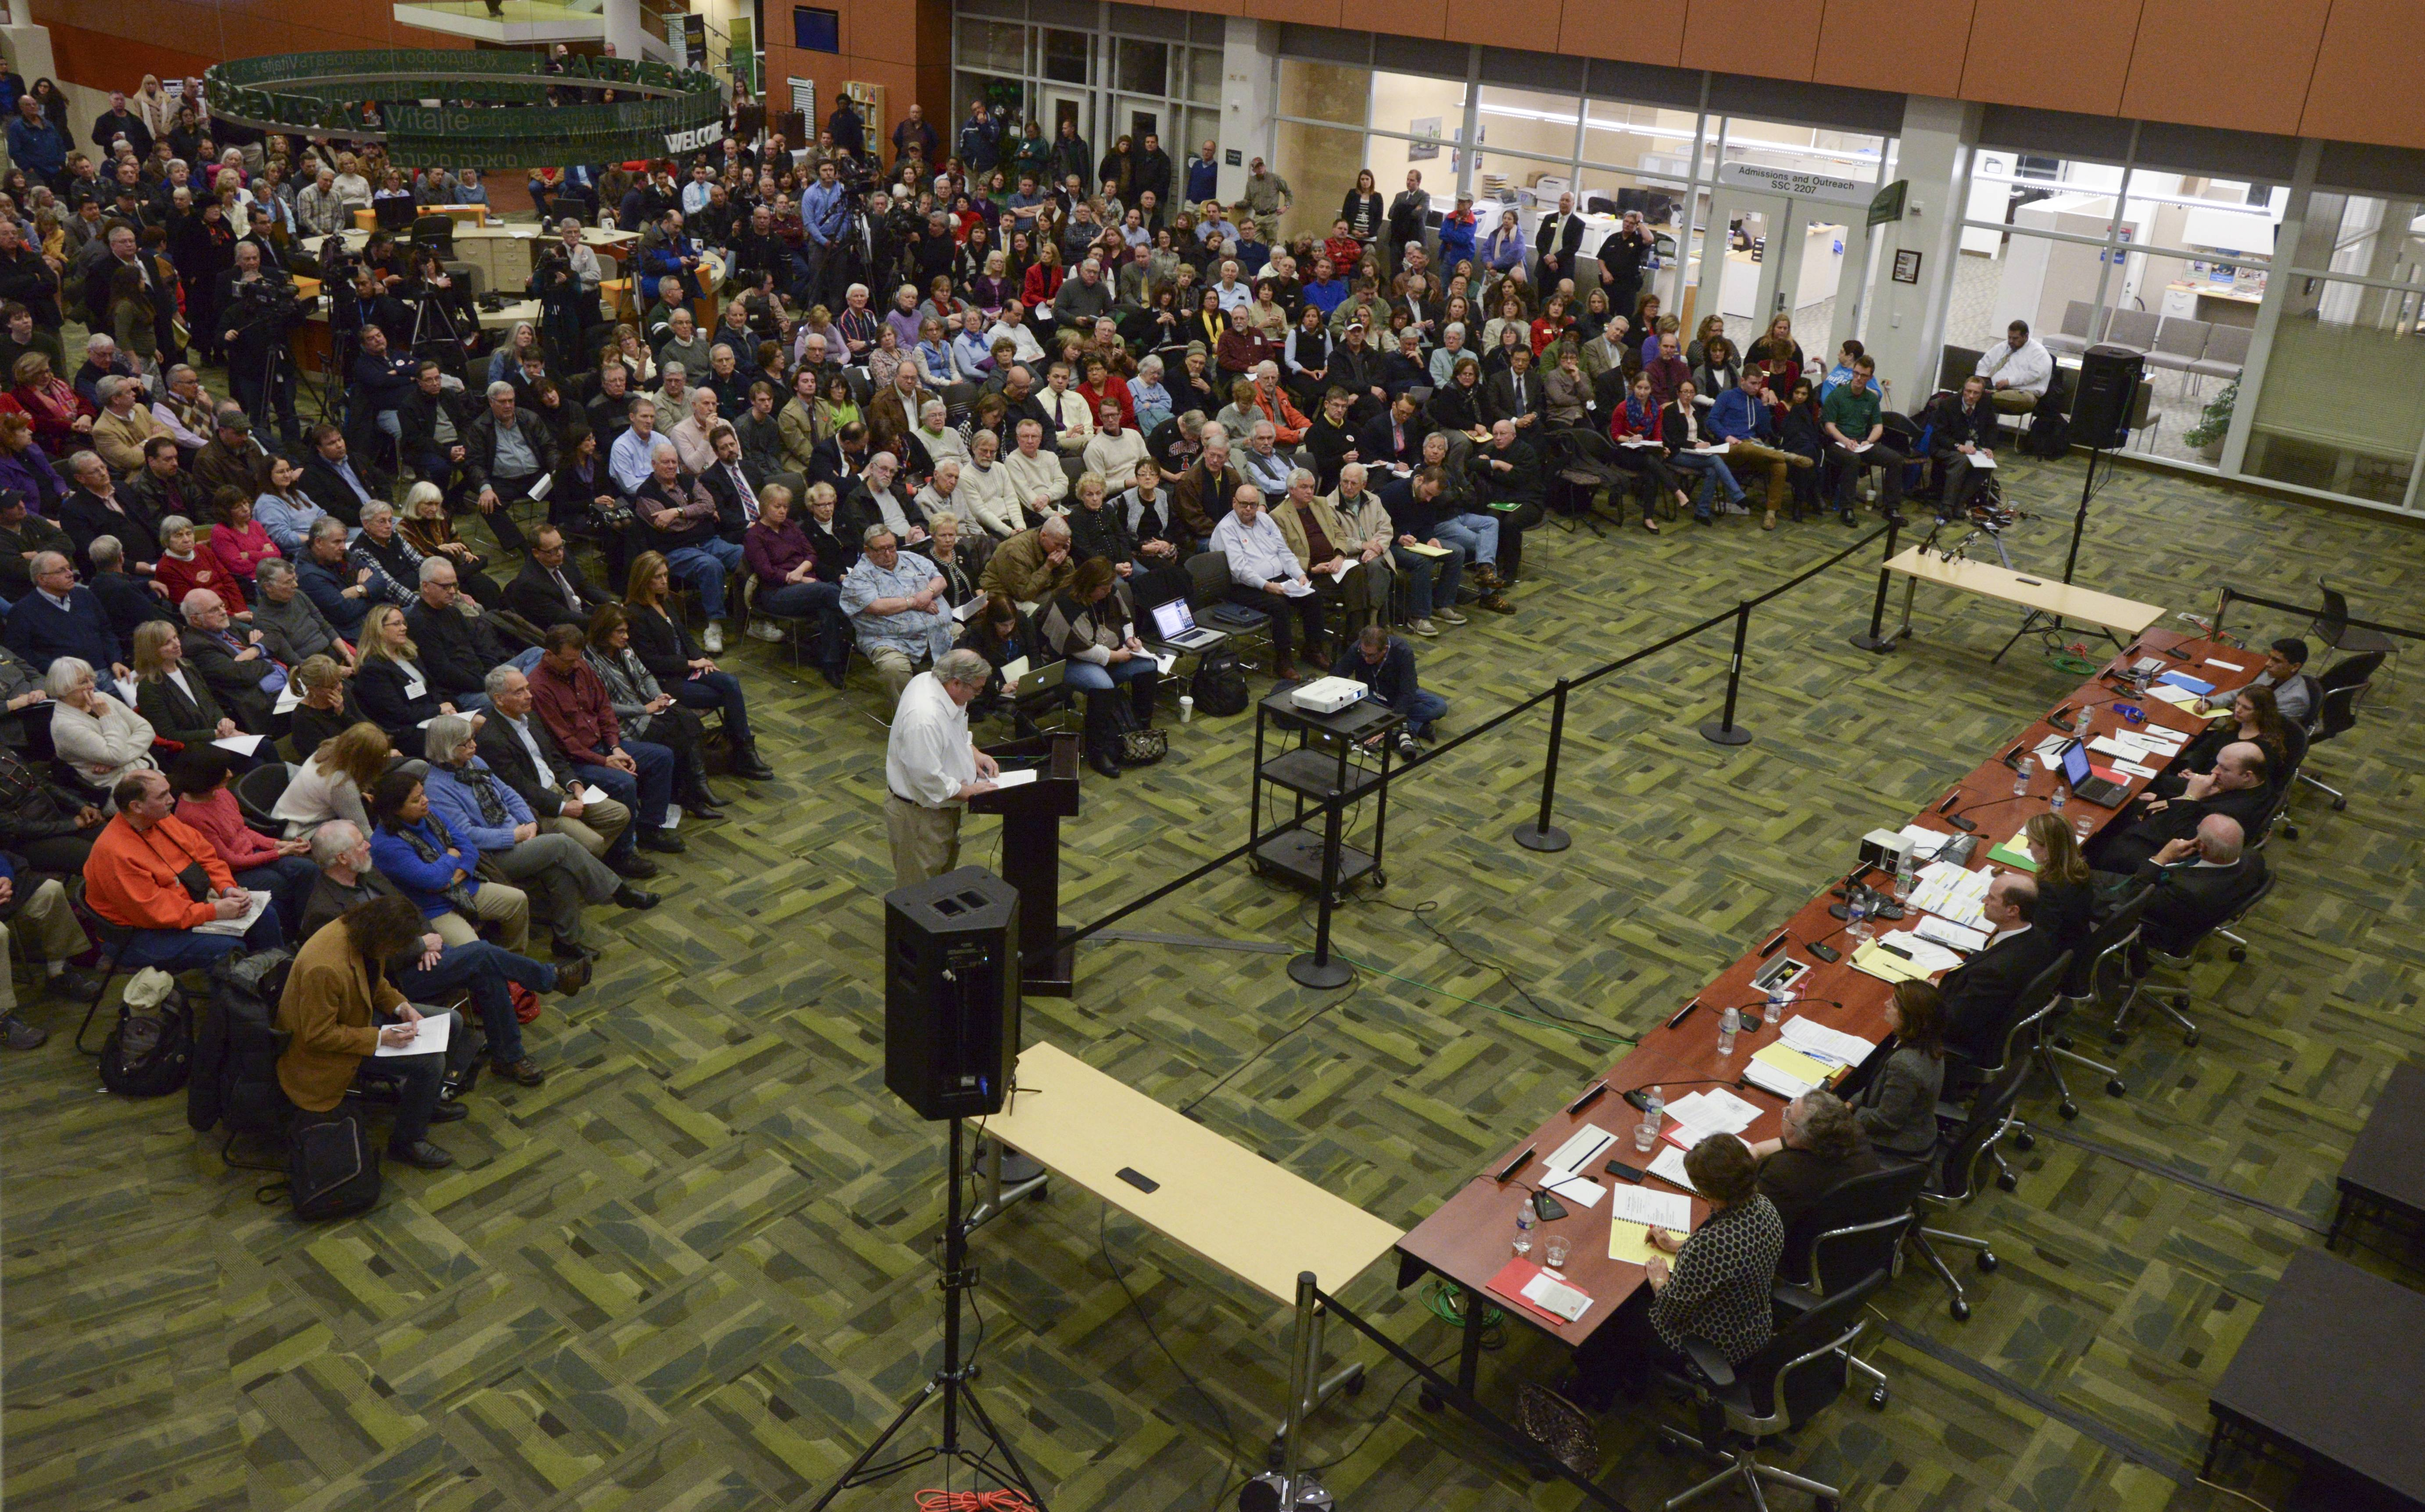 More than 300 people attended the January 2015 meeting where College of DuPage trustees approved a $763,000 retirement buyout of former school President Robert Breuder's contract.